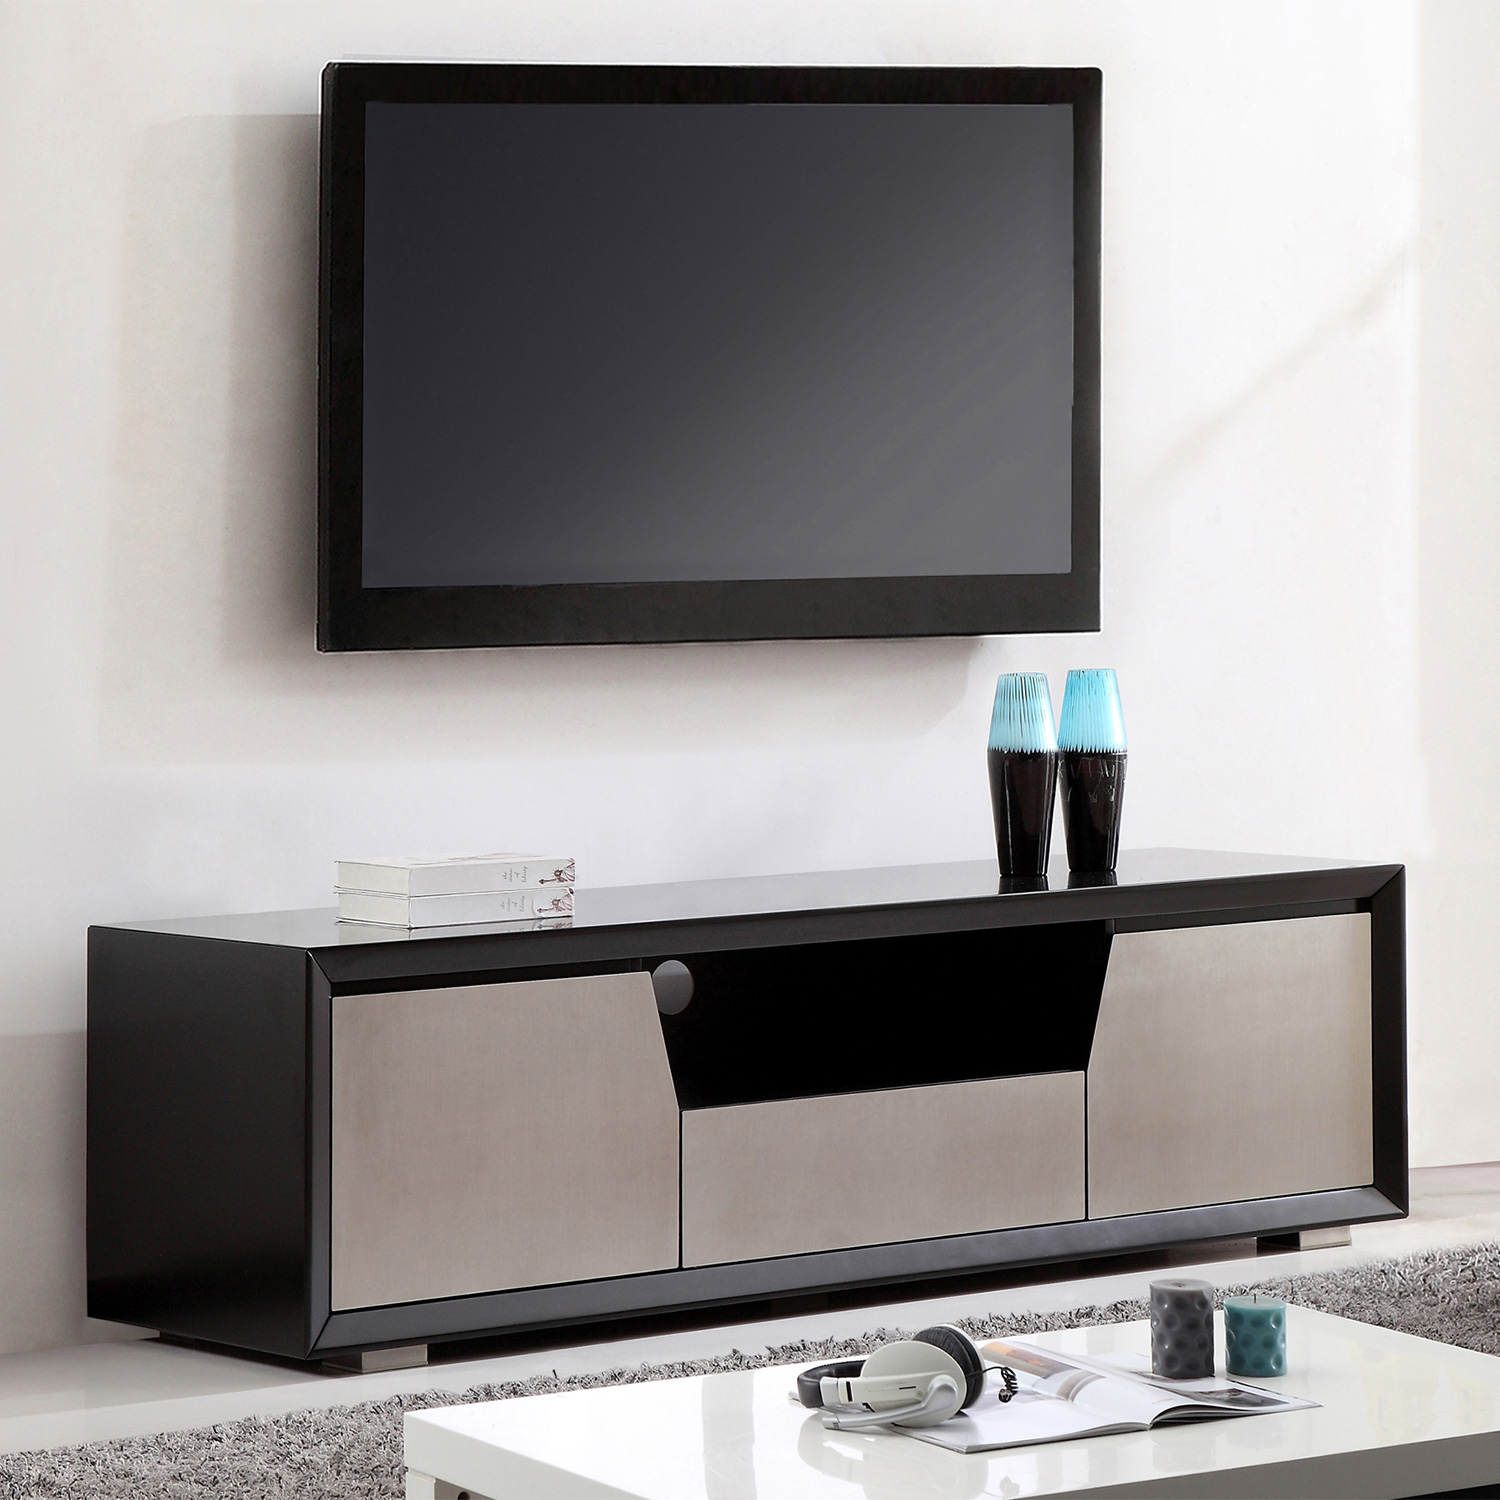 bmodern bmblk esquire  contemporary tv stand in matte  - esquire  contemporary tv stand in matte black  stainless steel